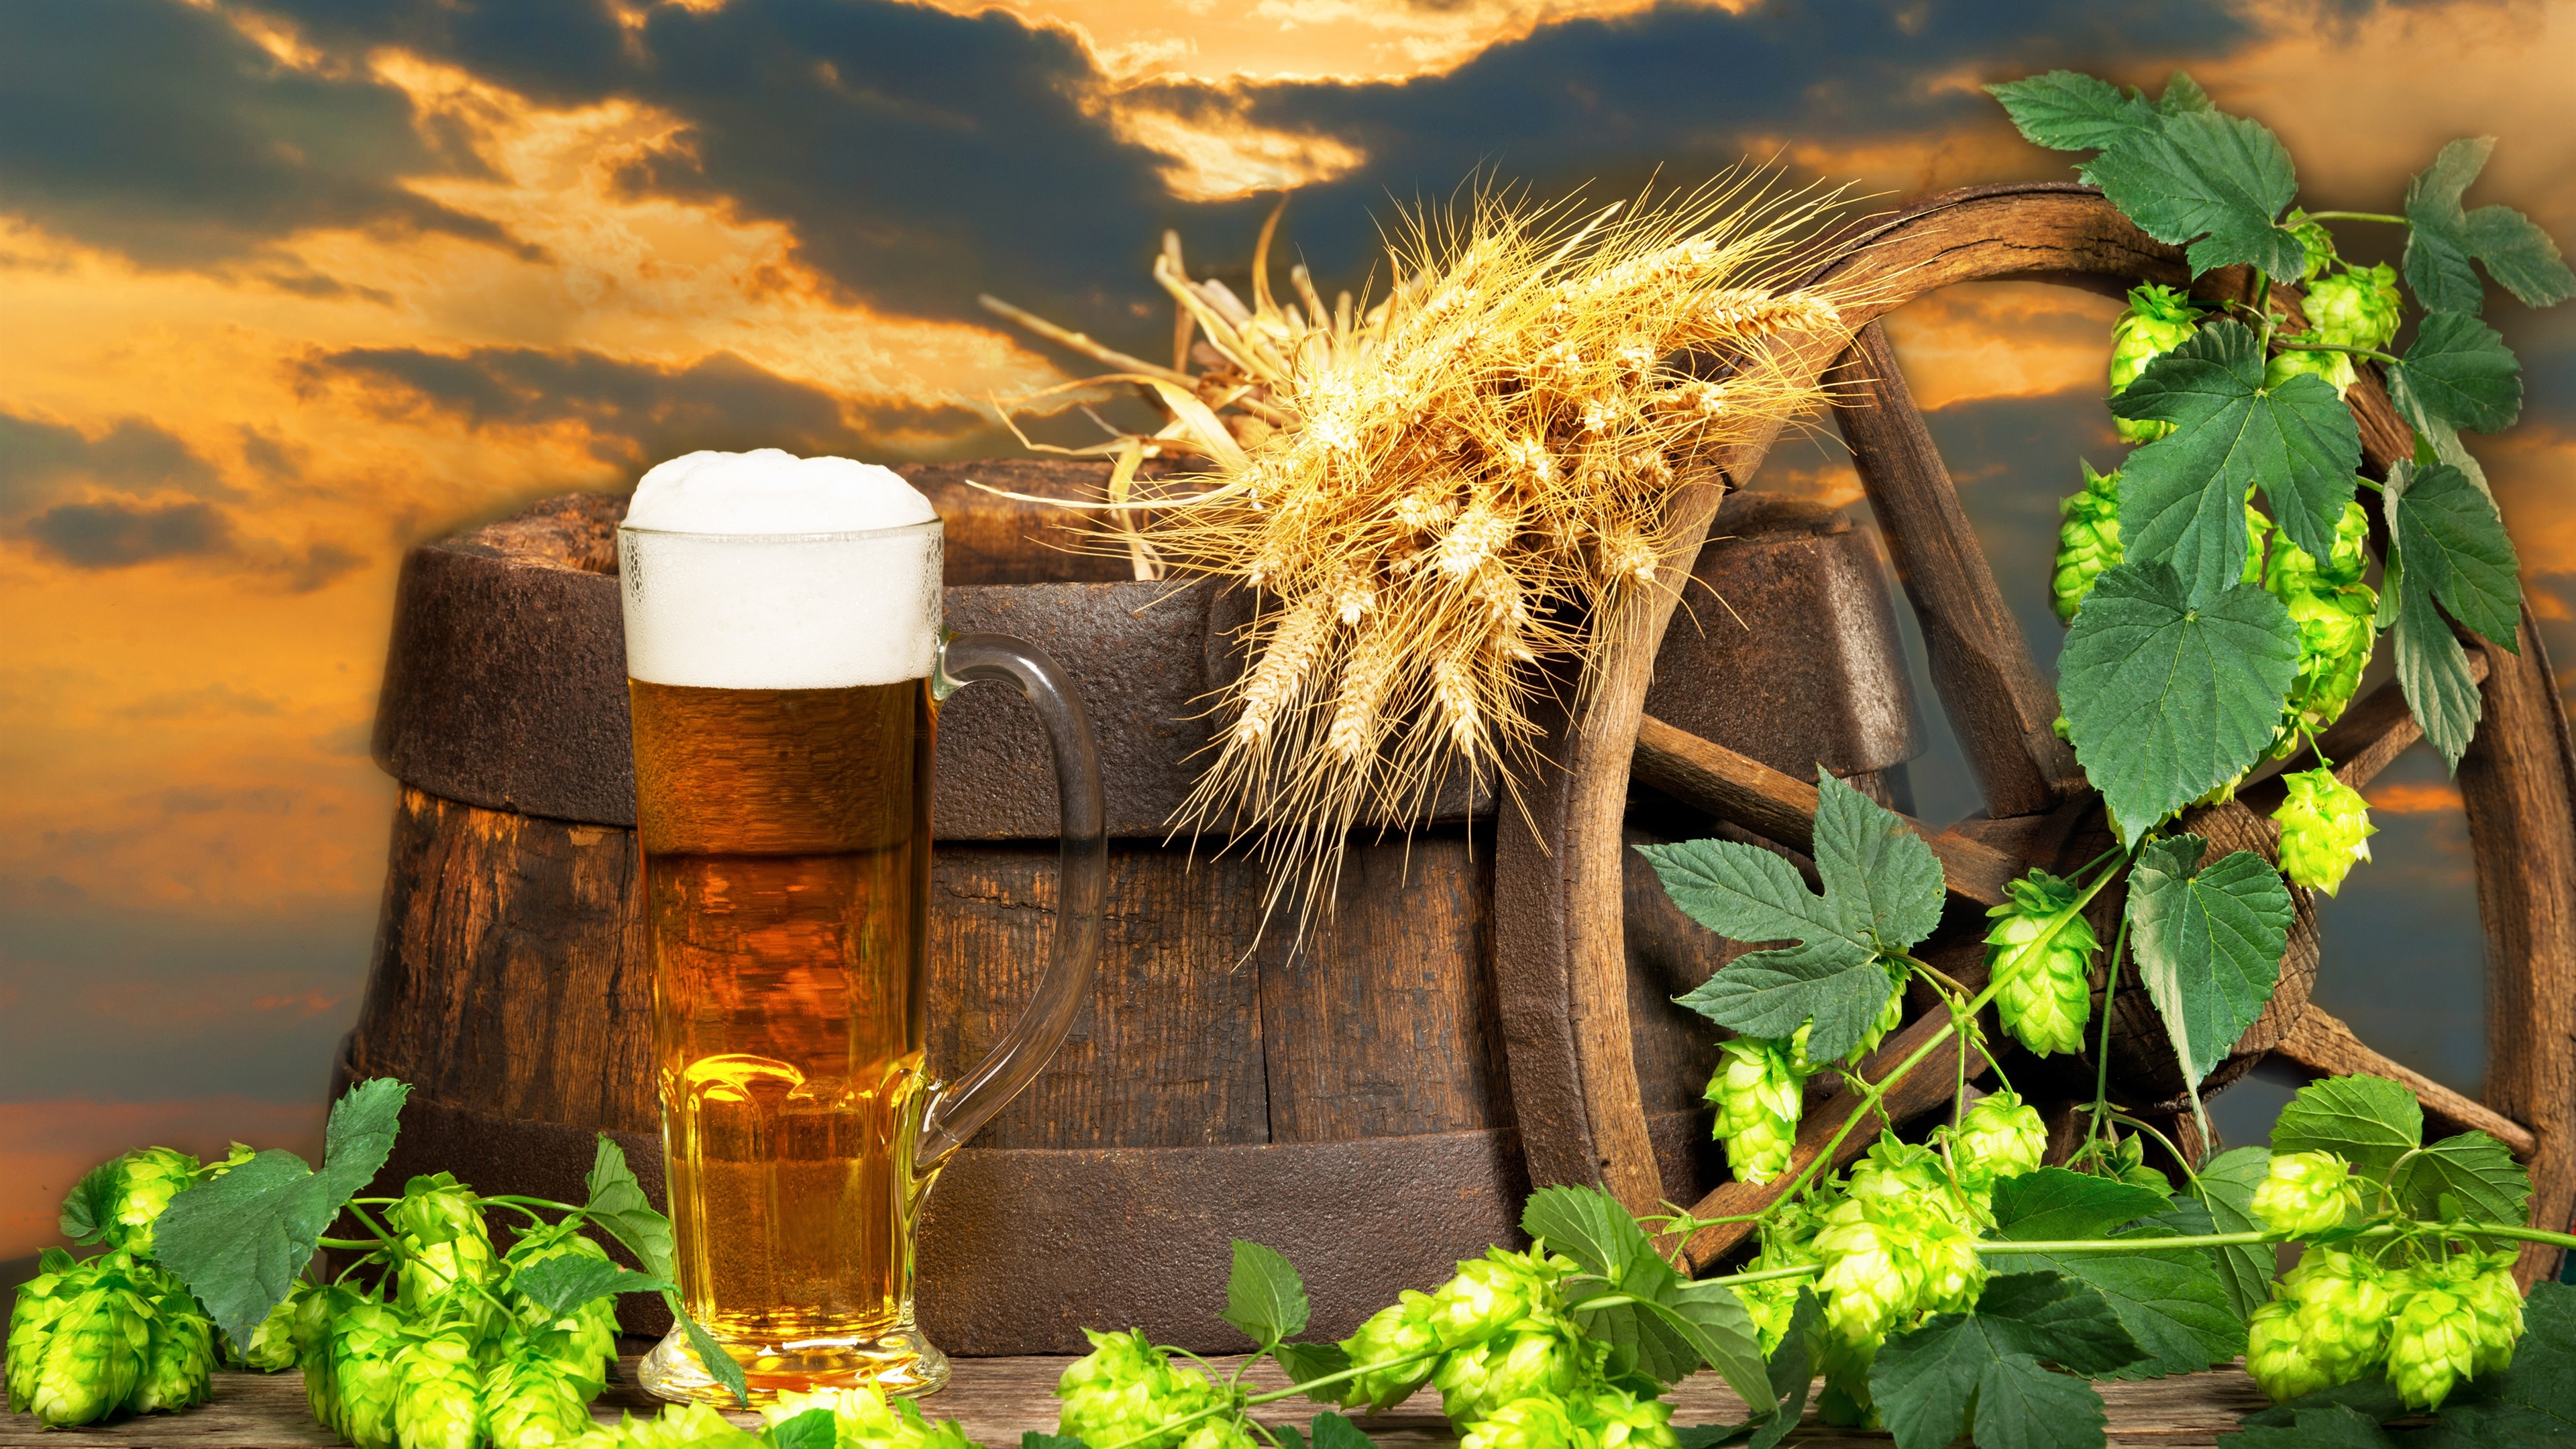 Wallpaper Beer Barrel Hops Foam 3840x2160 Uhd 4k Picture Image